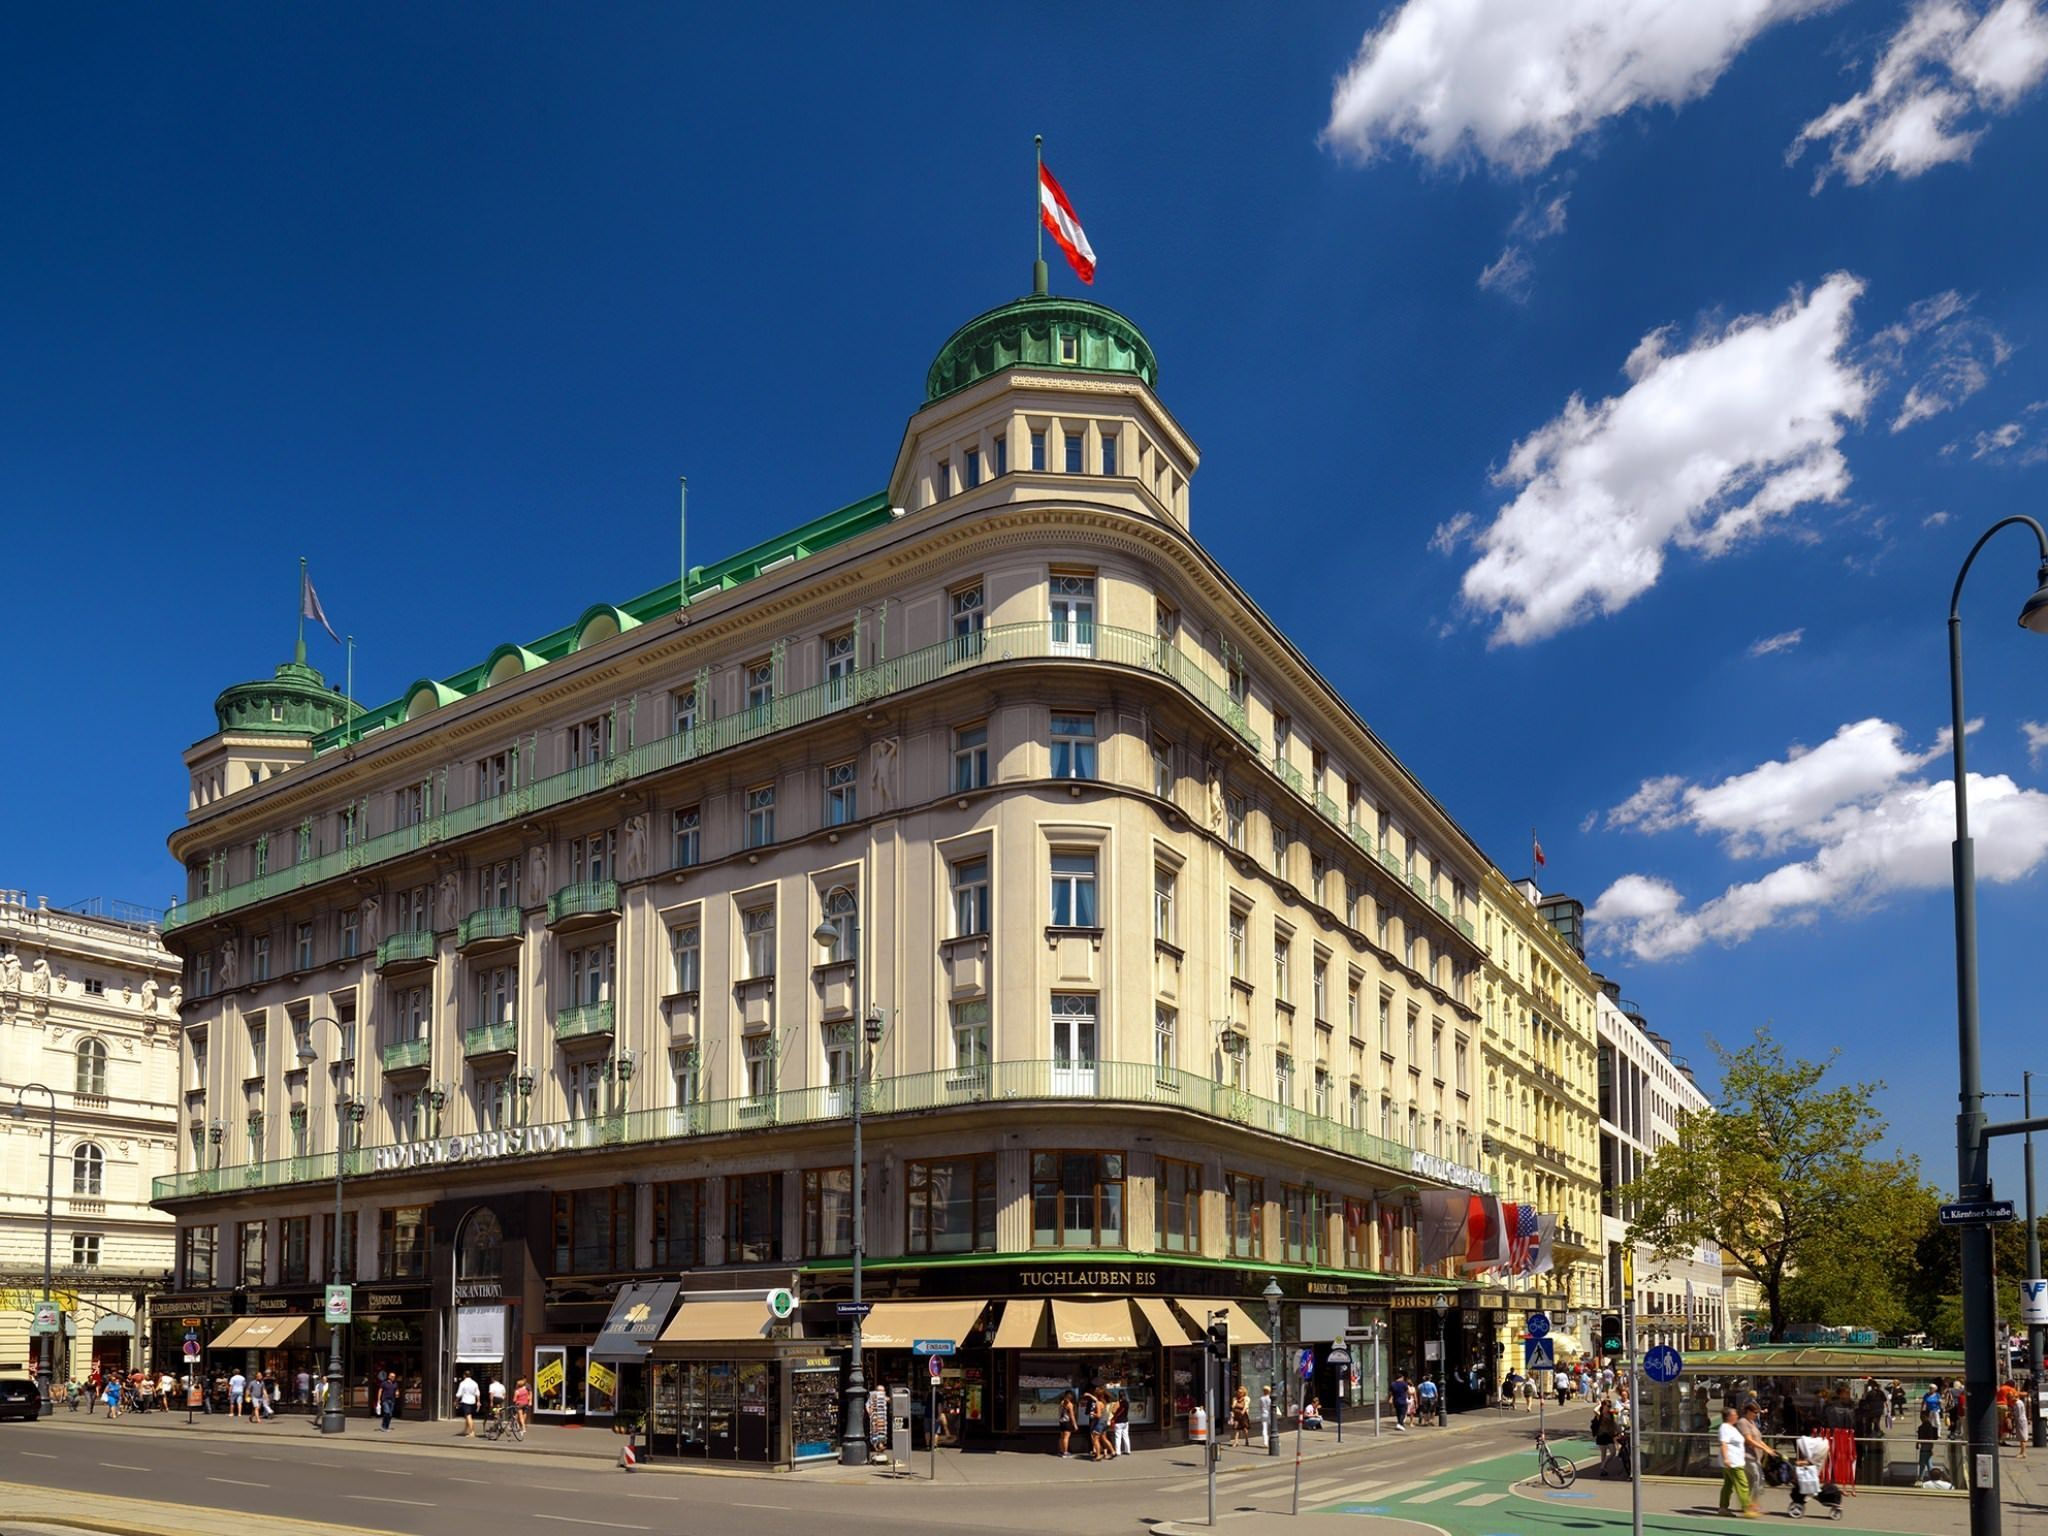 Luxus Hotel Bristol in Wien